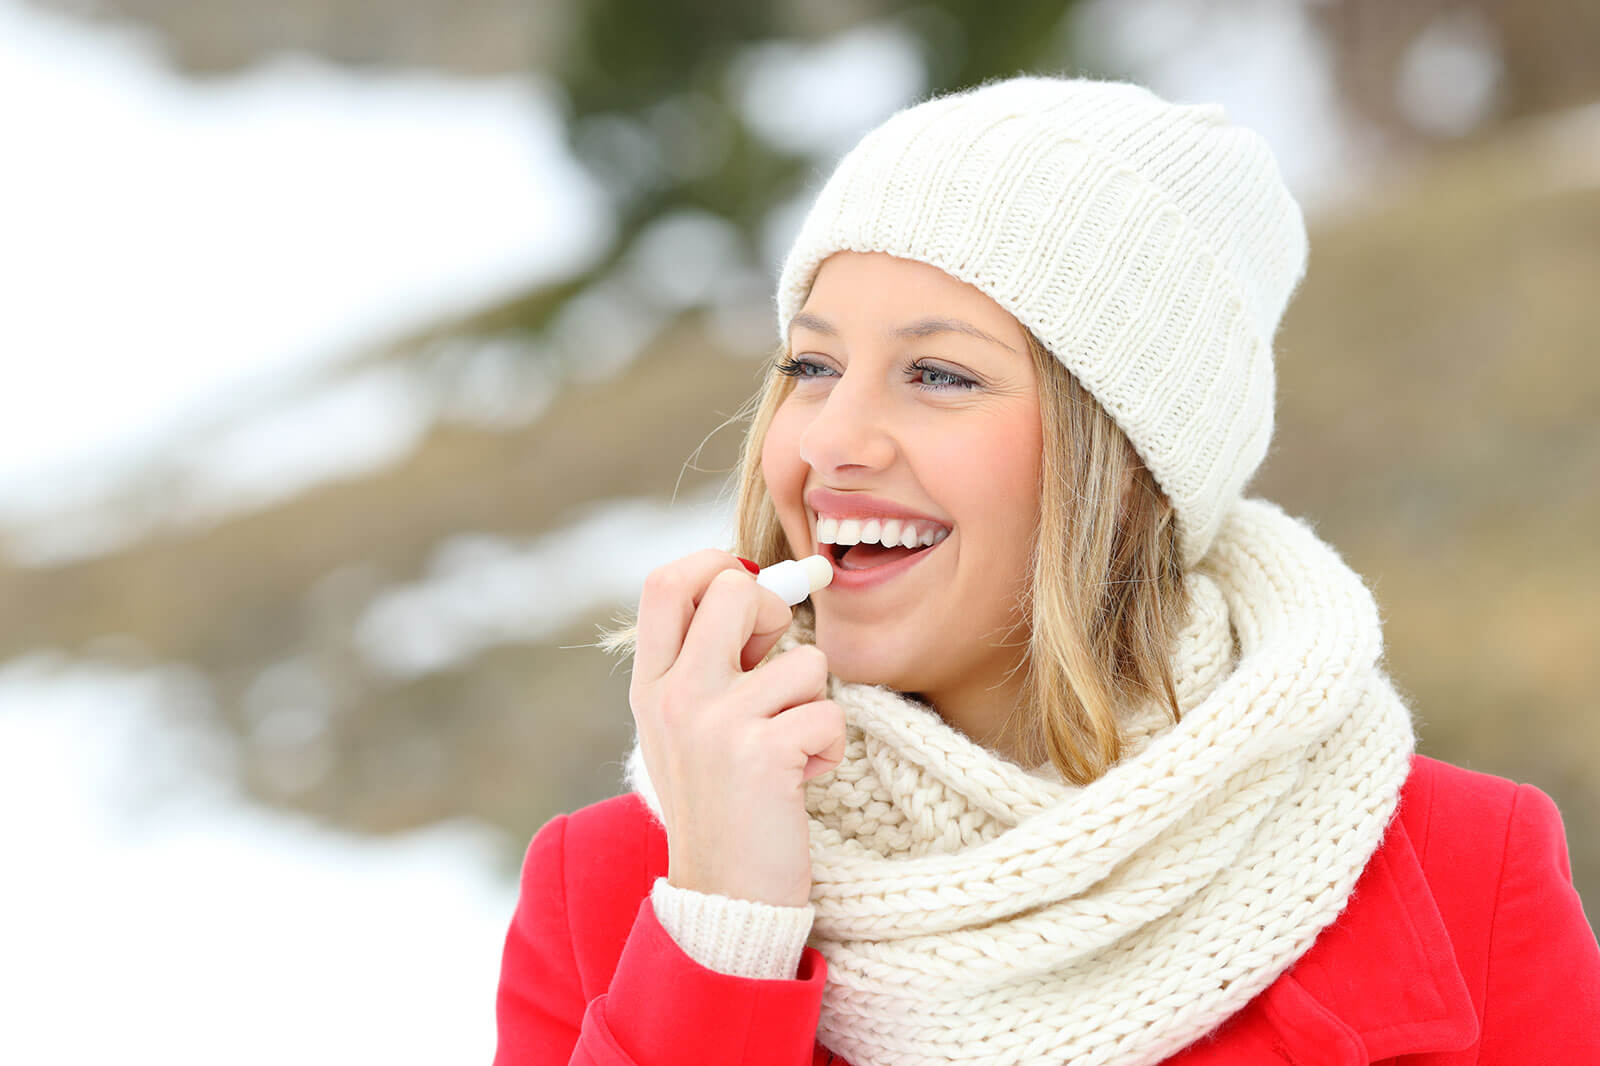 Woman with a white scarf and beanie is putting lip balm on her lips